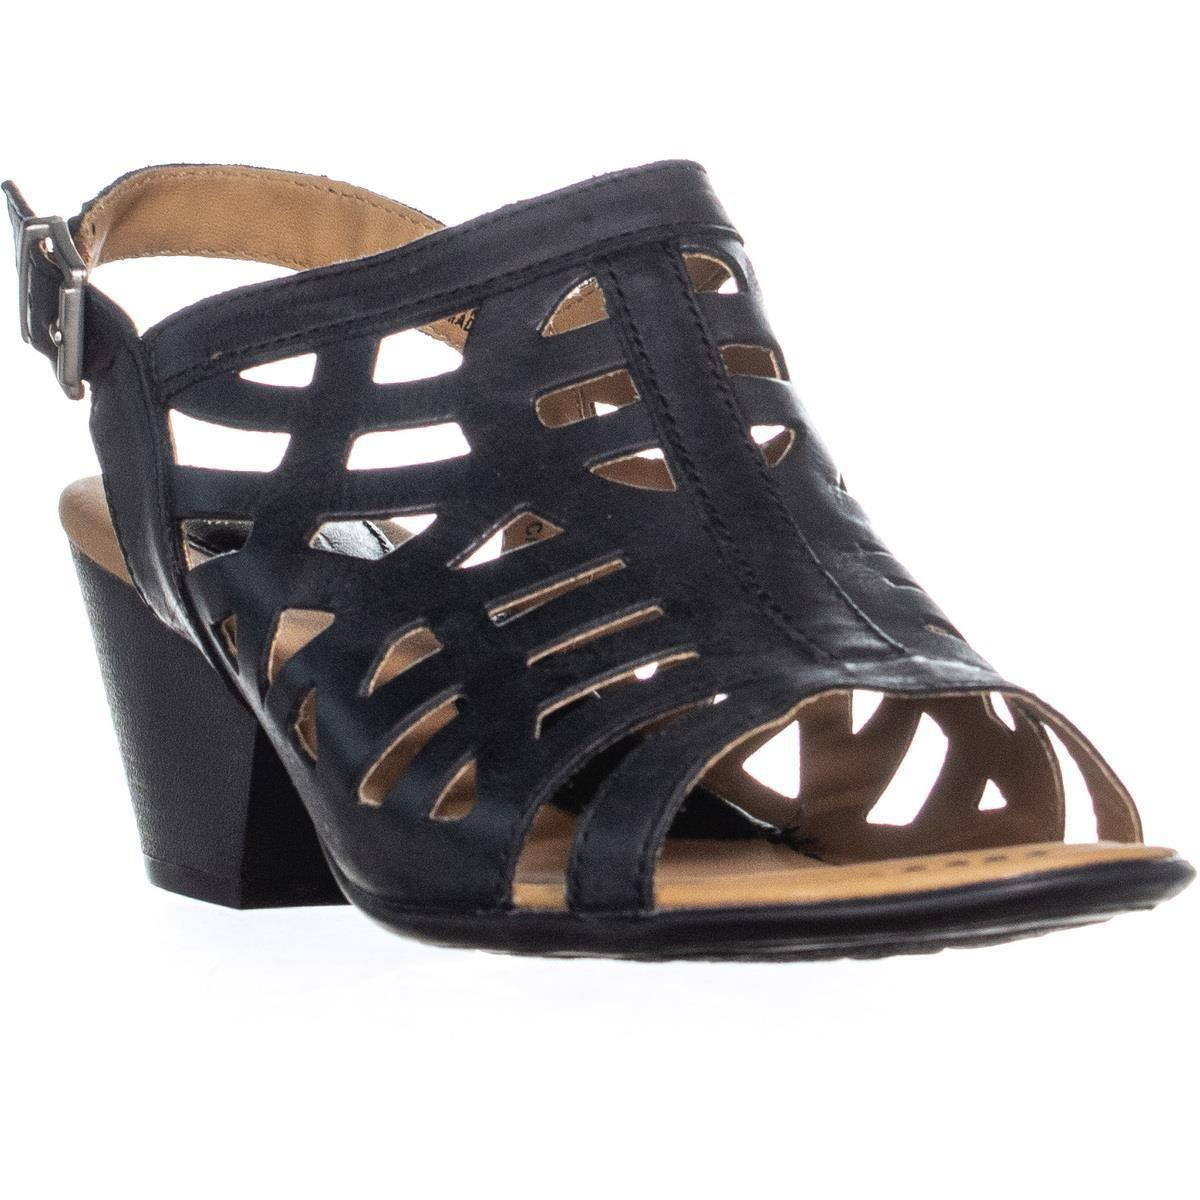 9f5128825c6c Born. Women s Dixie Perforated Buckle Heeled Sandals ...